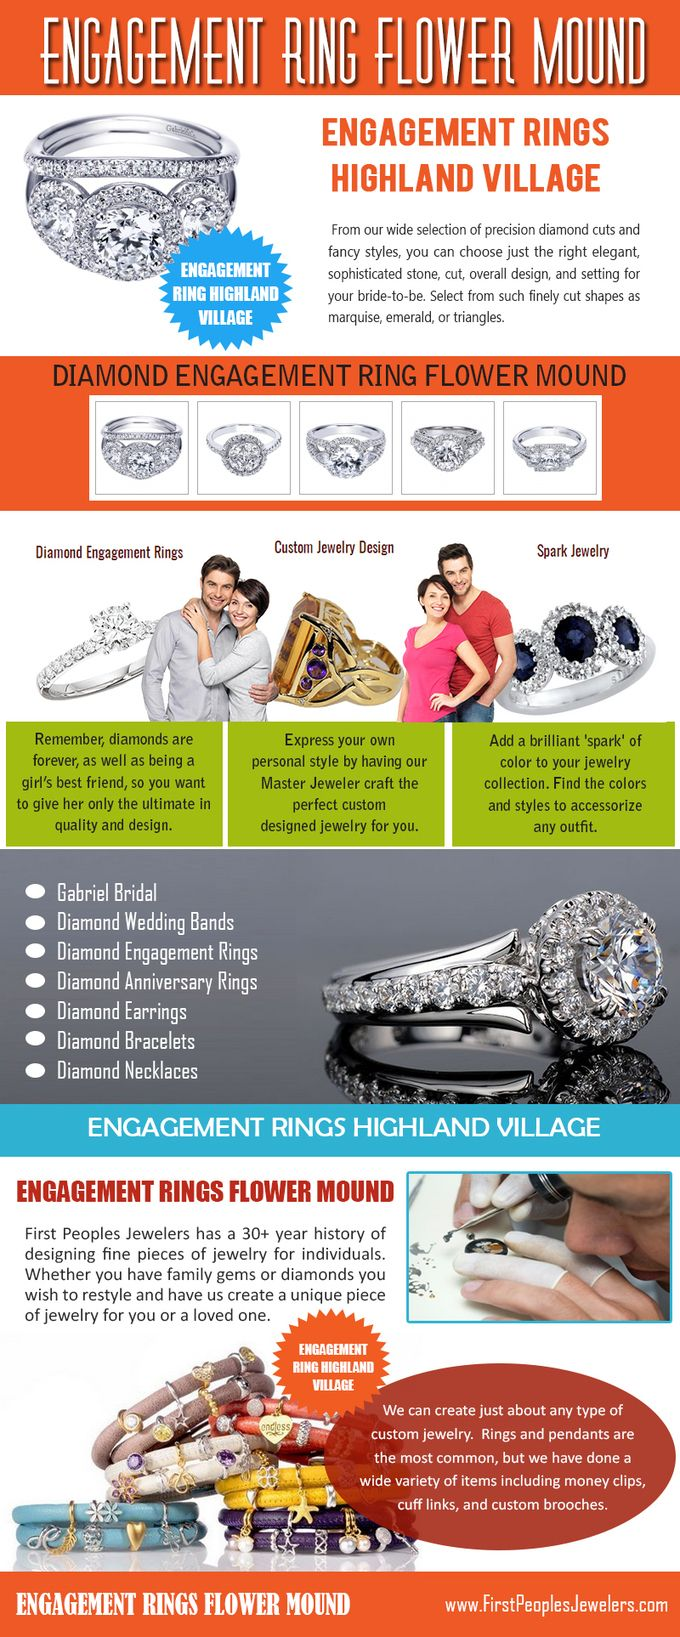 They allow you to create your own diamond engagement ring by just following simple steps. Customers have the option to choose any certified diamond and can get it studded on a platinum ring or gold ring. Let it be diamond engagement ring, platinum engagement ring or emerald engagement ring, you can give your personal touch to all of these rings. Browse this site https://firstpeoplesjewelers.com/ for more information on Engagement Ring Flower Mound.